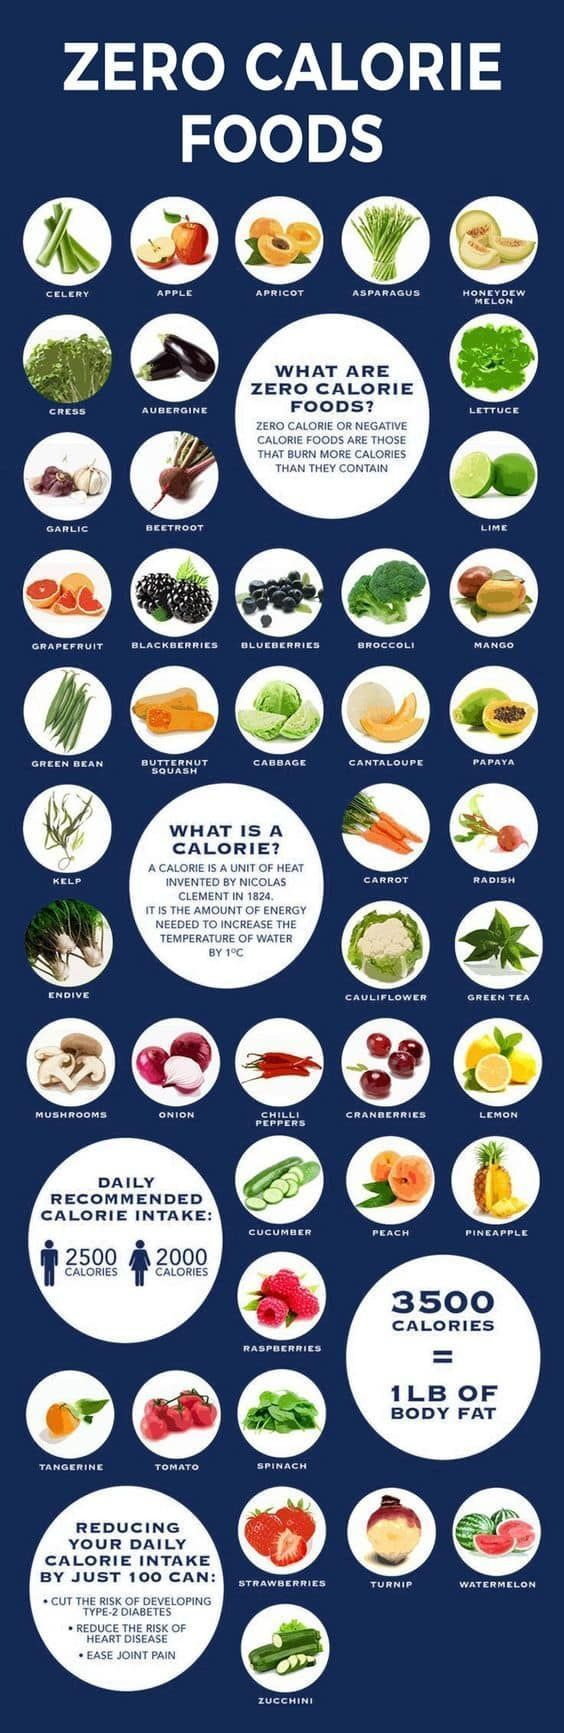 11 Of The Best FAT-BURNING Foods. Lose weight fast and relatively effortlessly and in the most healthy way. Those foods have a lower glycemic load. This means they won't cause your blood sugar to spike as much as other foods.